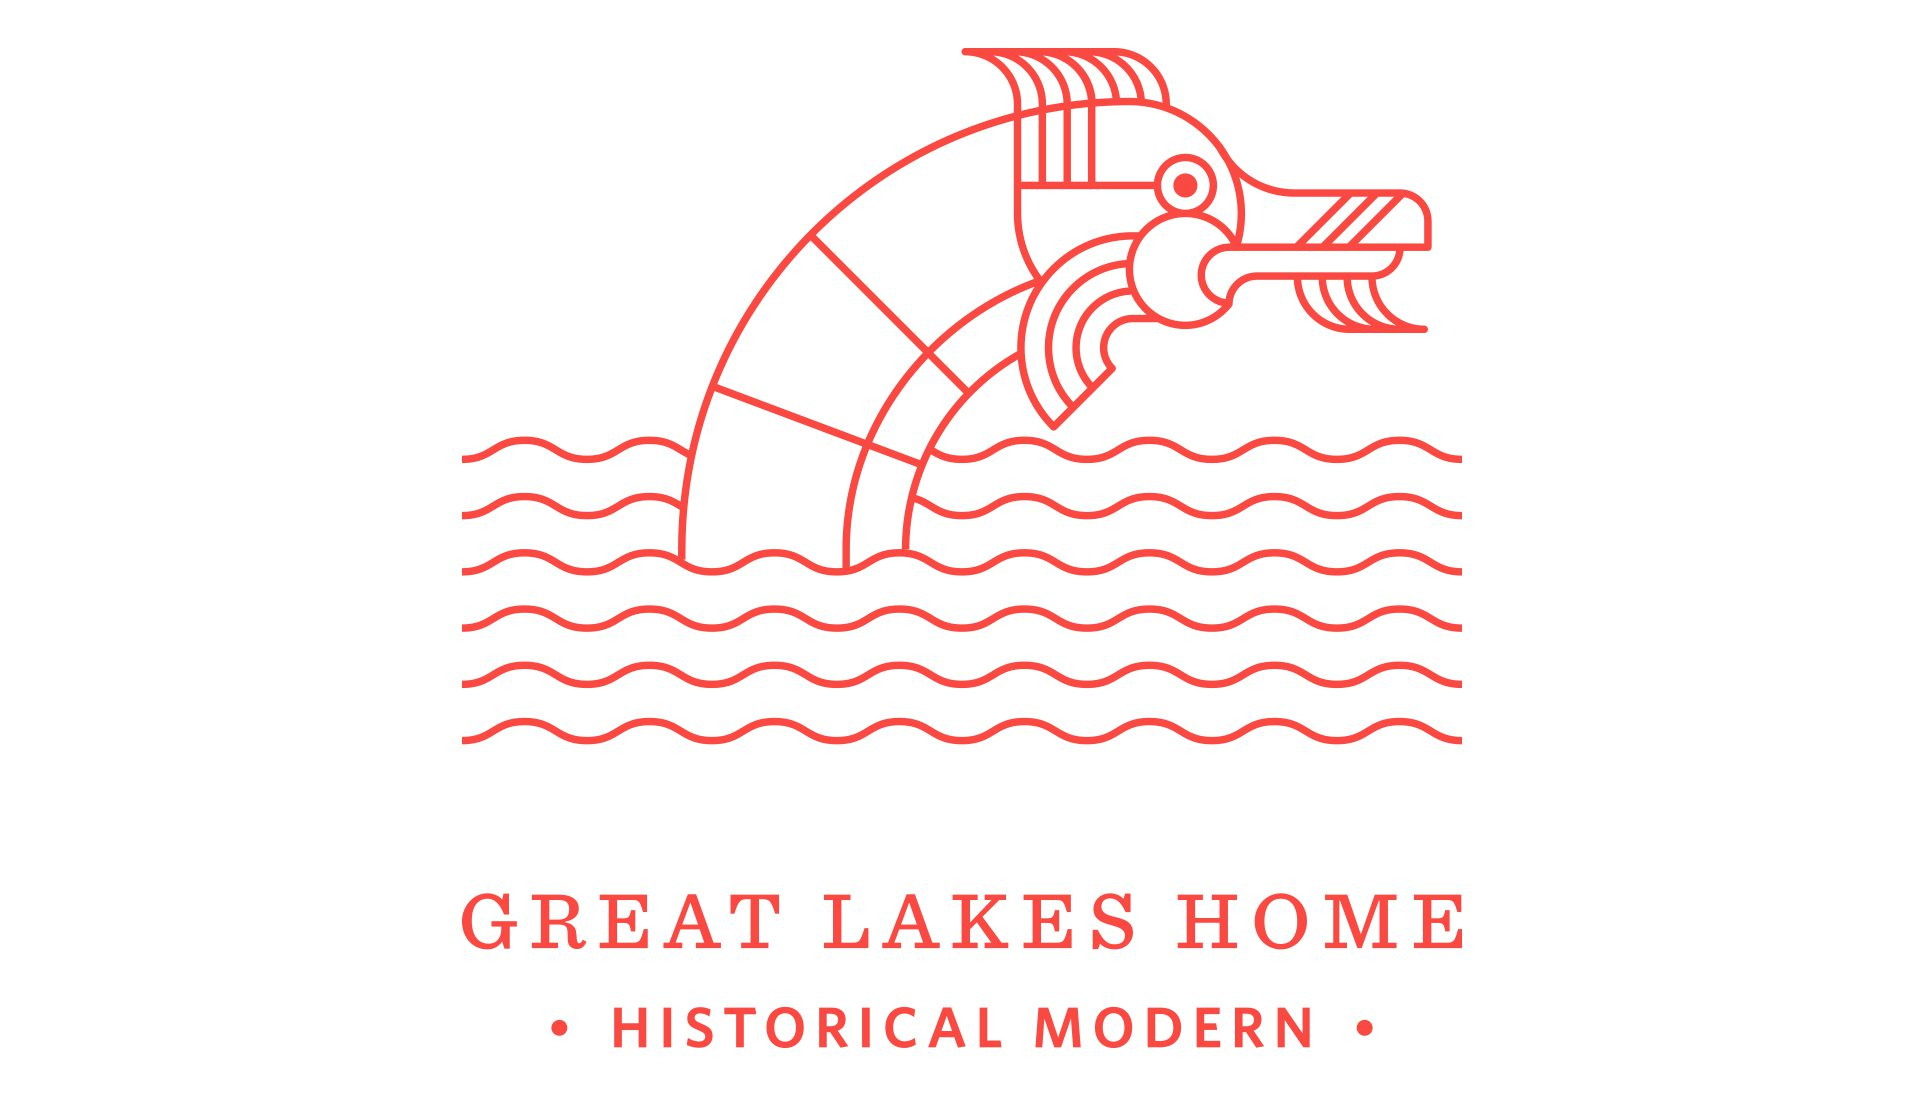 A red logomark for Great Lakes Home depicting a sea monster and the sea